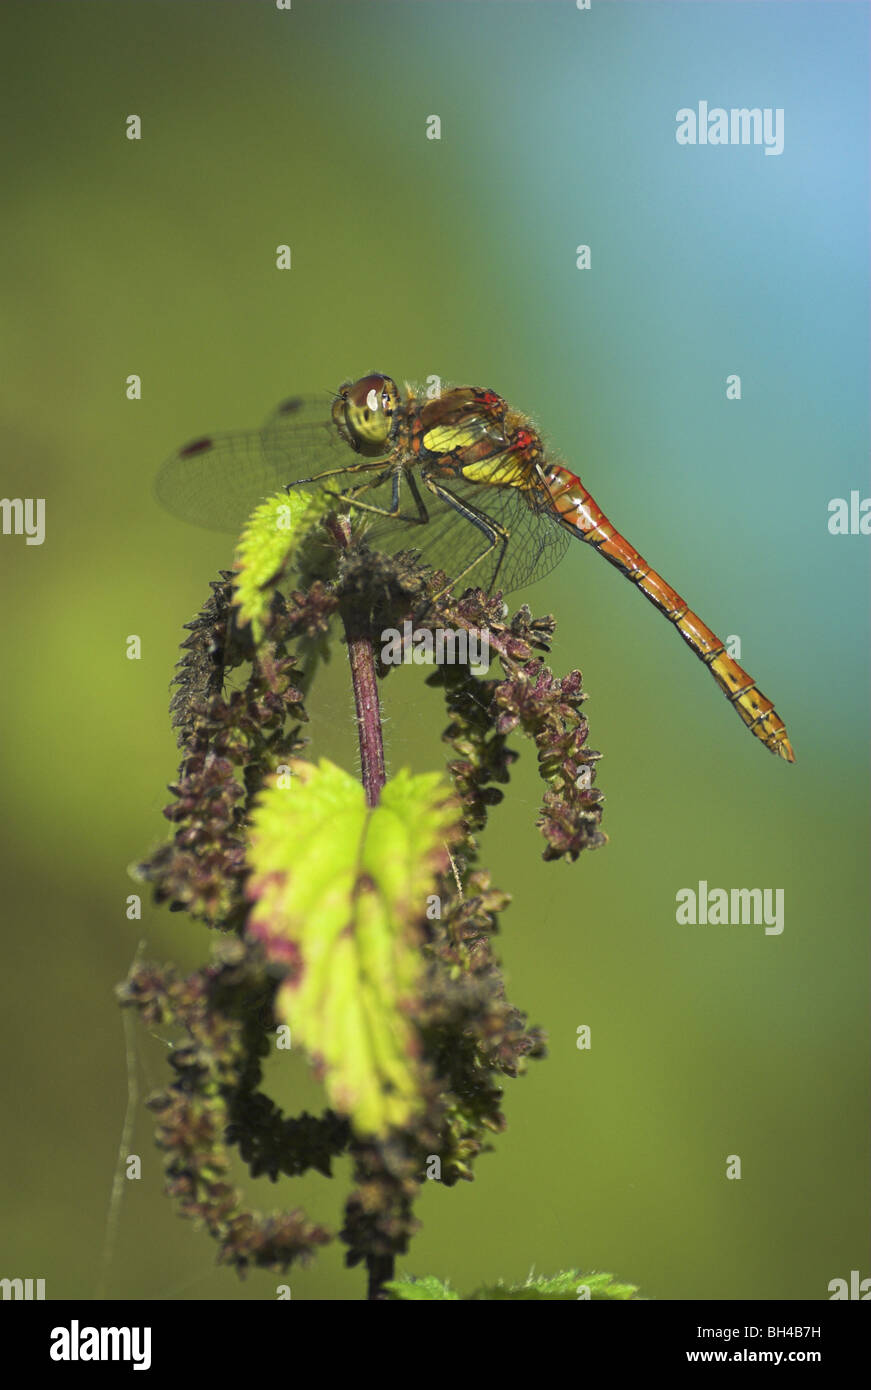 Male common darter dragonfly (sympetrum striolatum) resting on a stinging nettle. Stock Photo